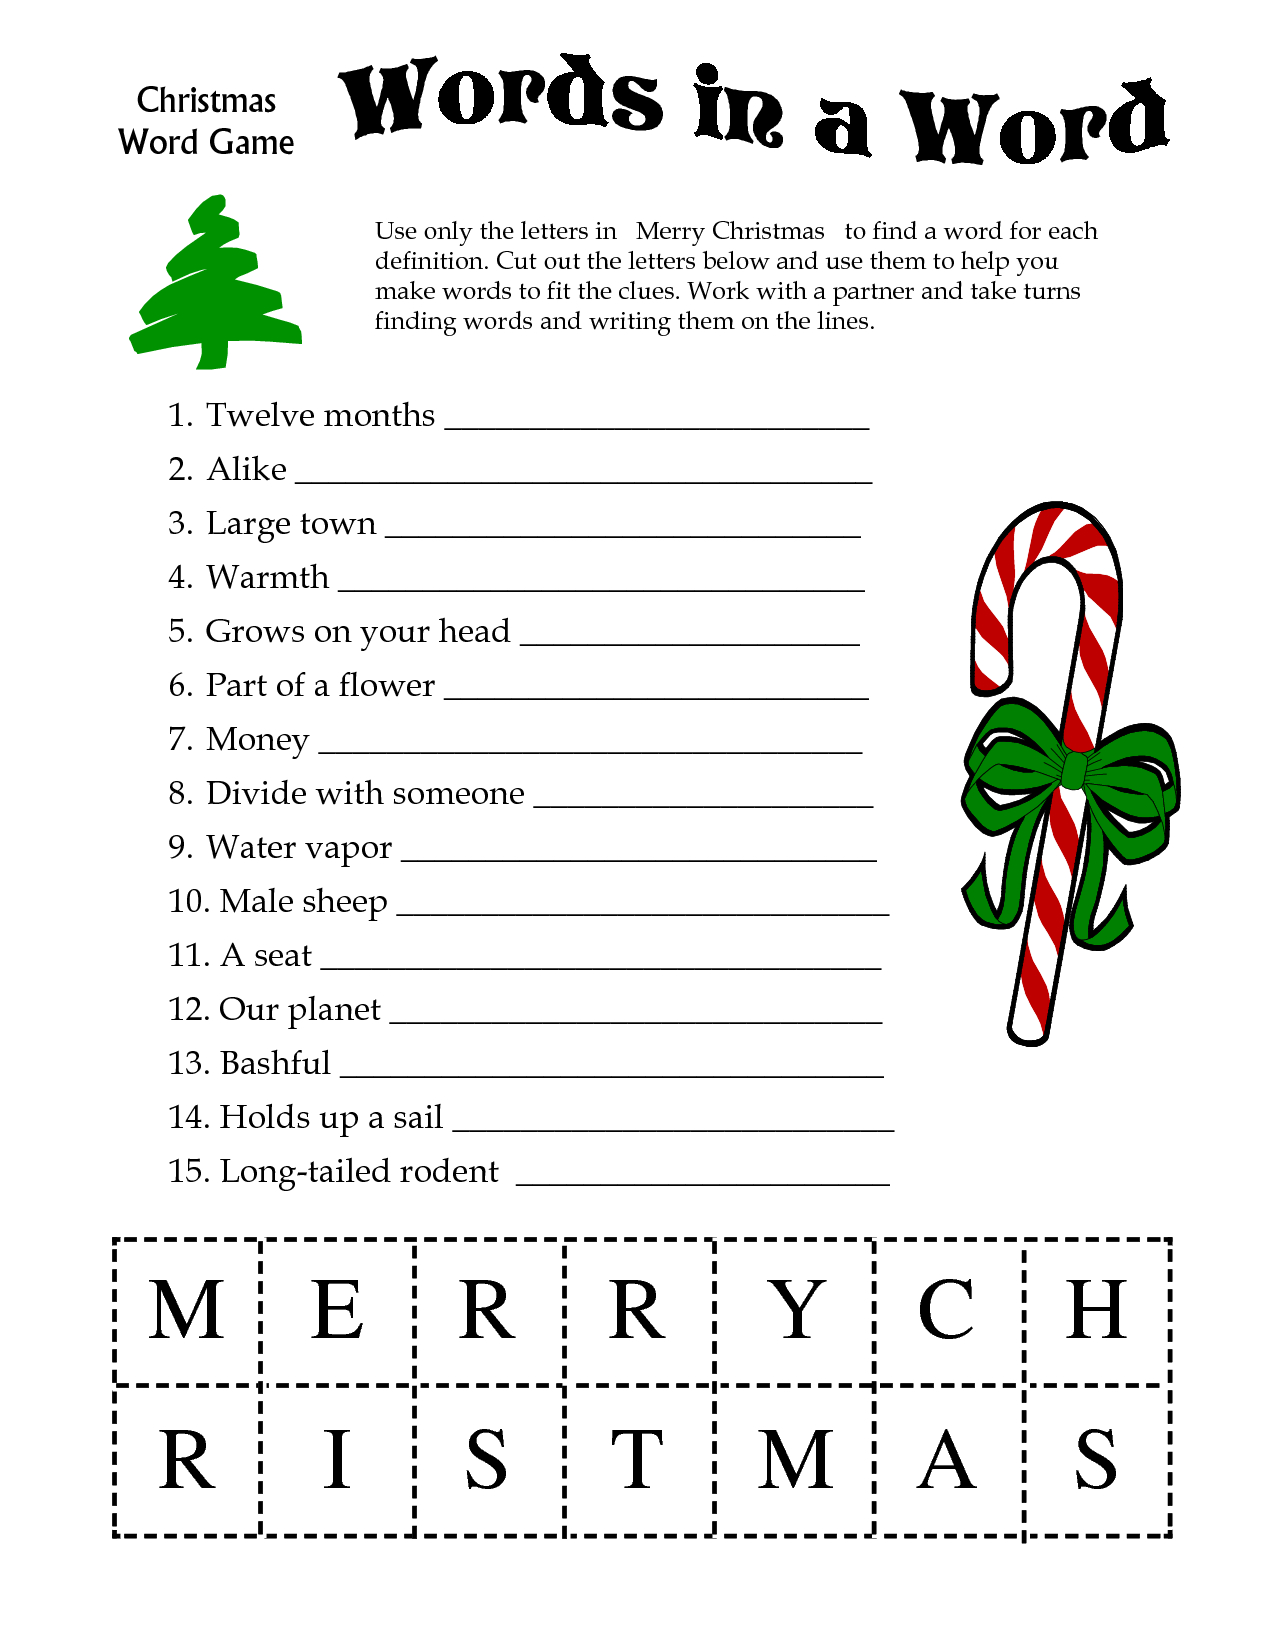 5 Images Of Free Printable Christmas Word Games   Printablee - Free Printable Christmas Word Games For Adults